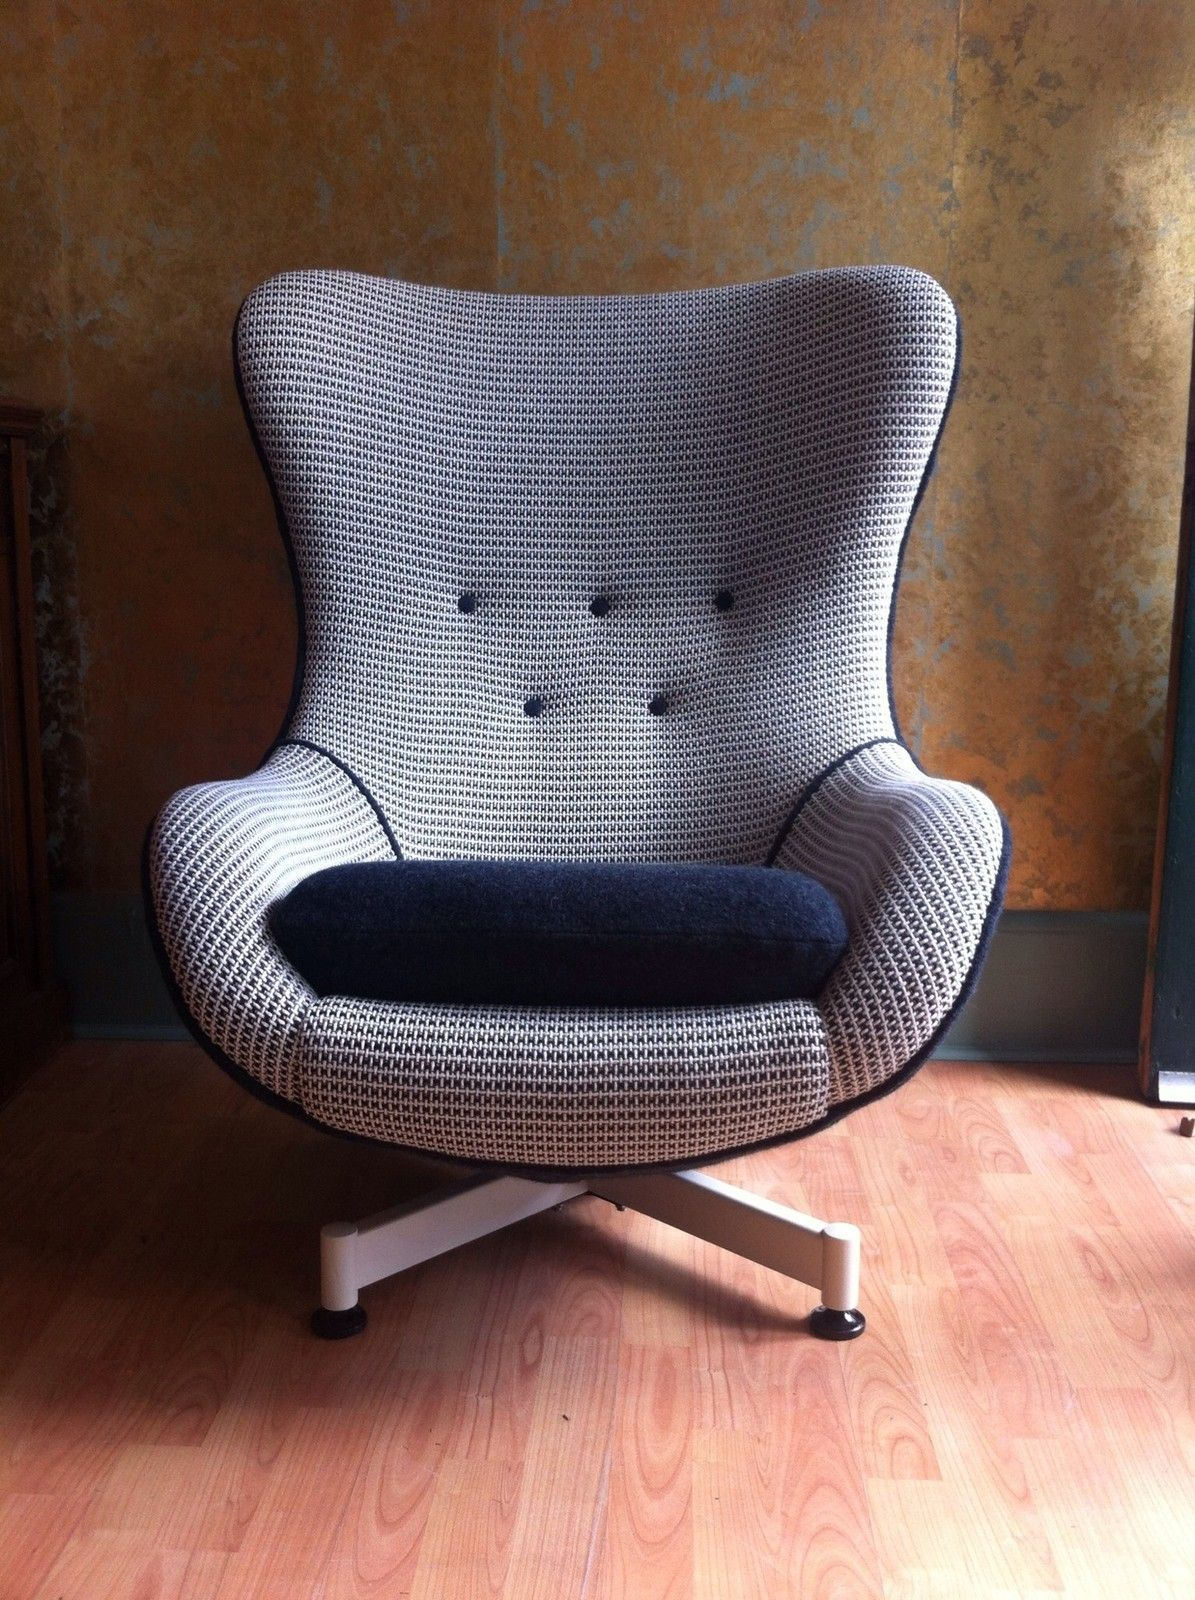 Original S Thomas Greaves Egg Chair Mid Century Mod - Parker knoll egg chair